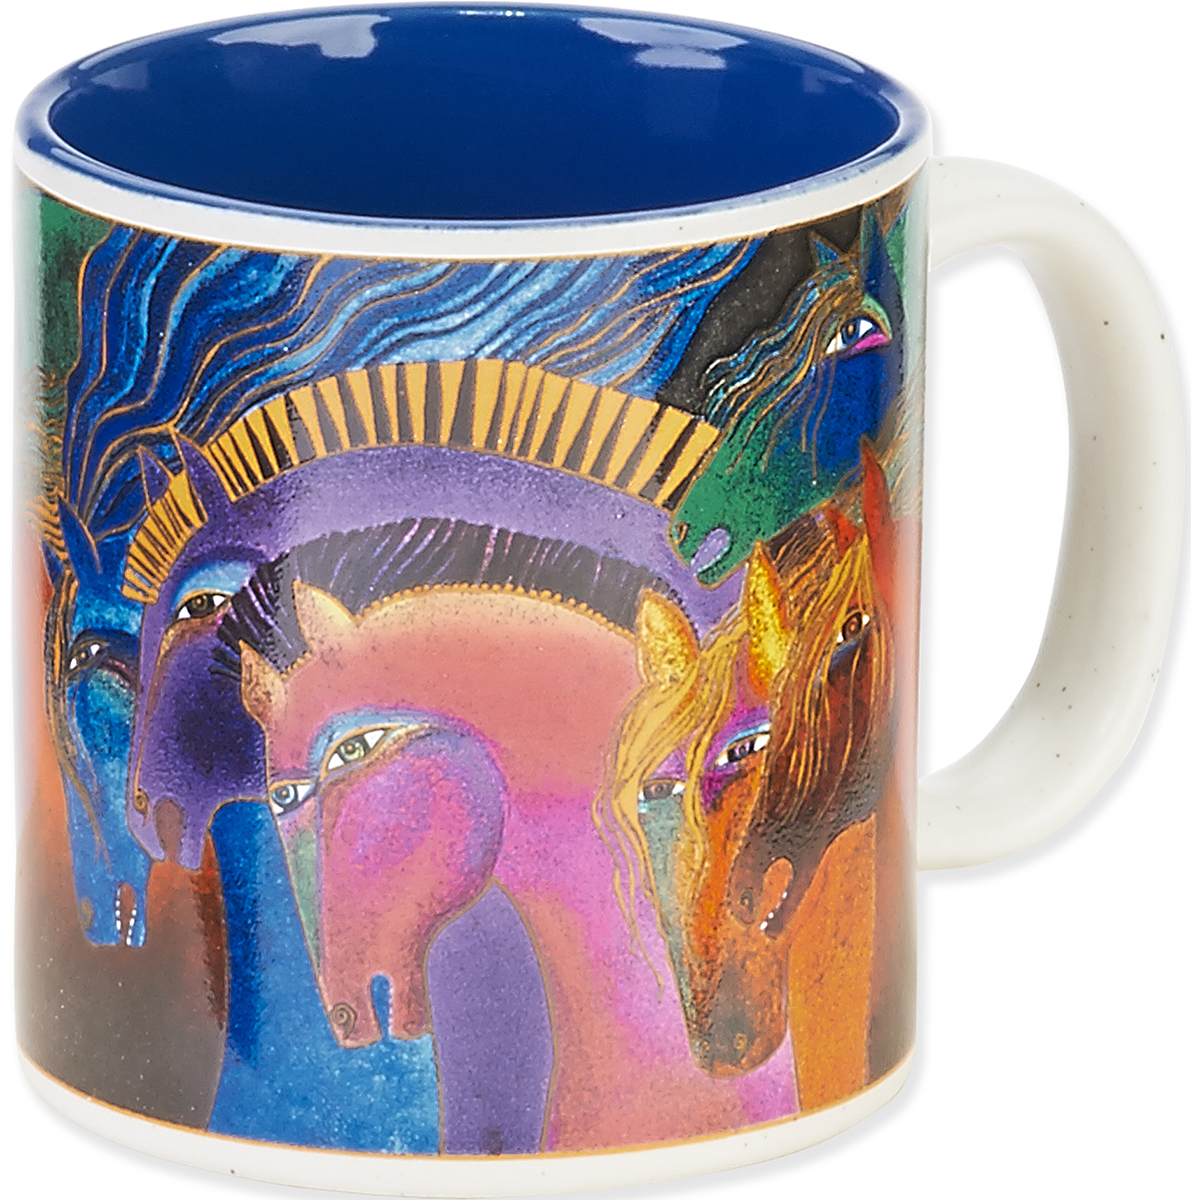 Laurel Burch Wild Horse Mug